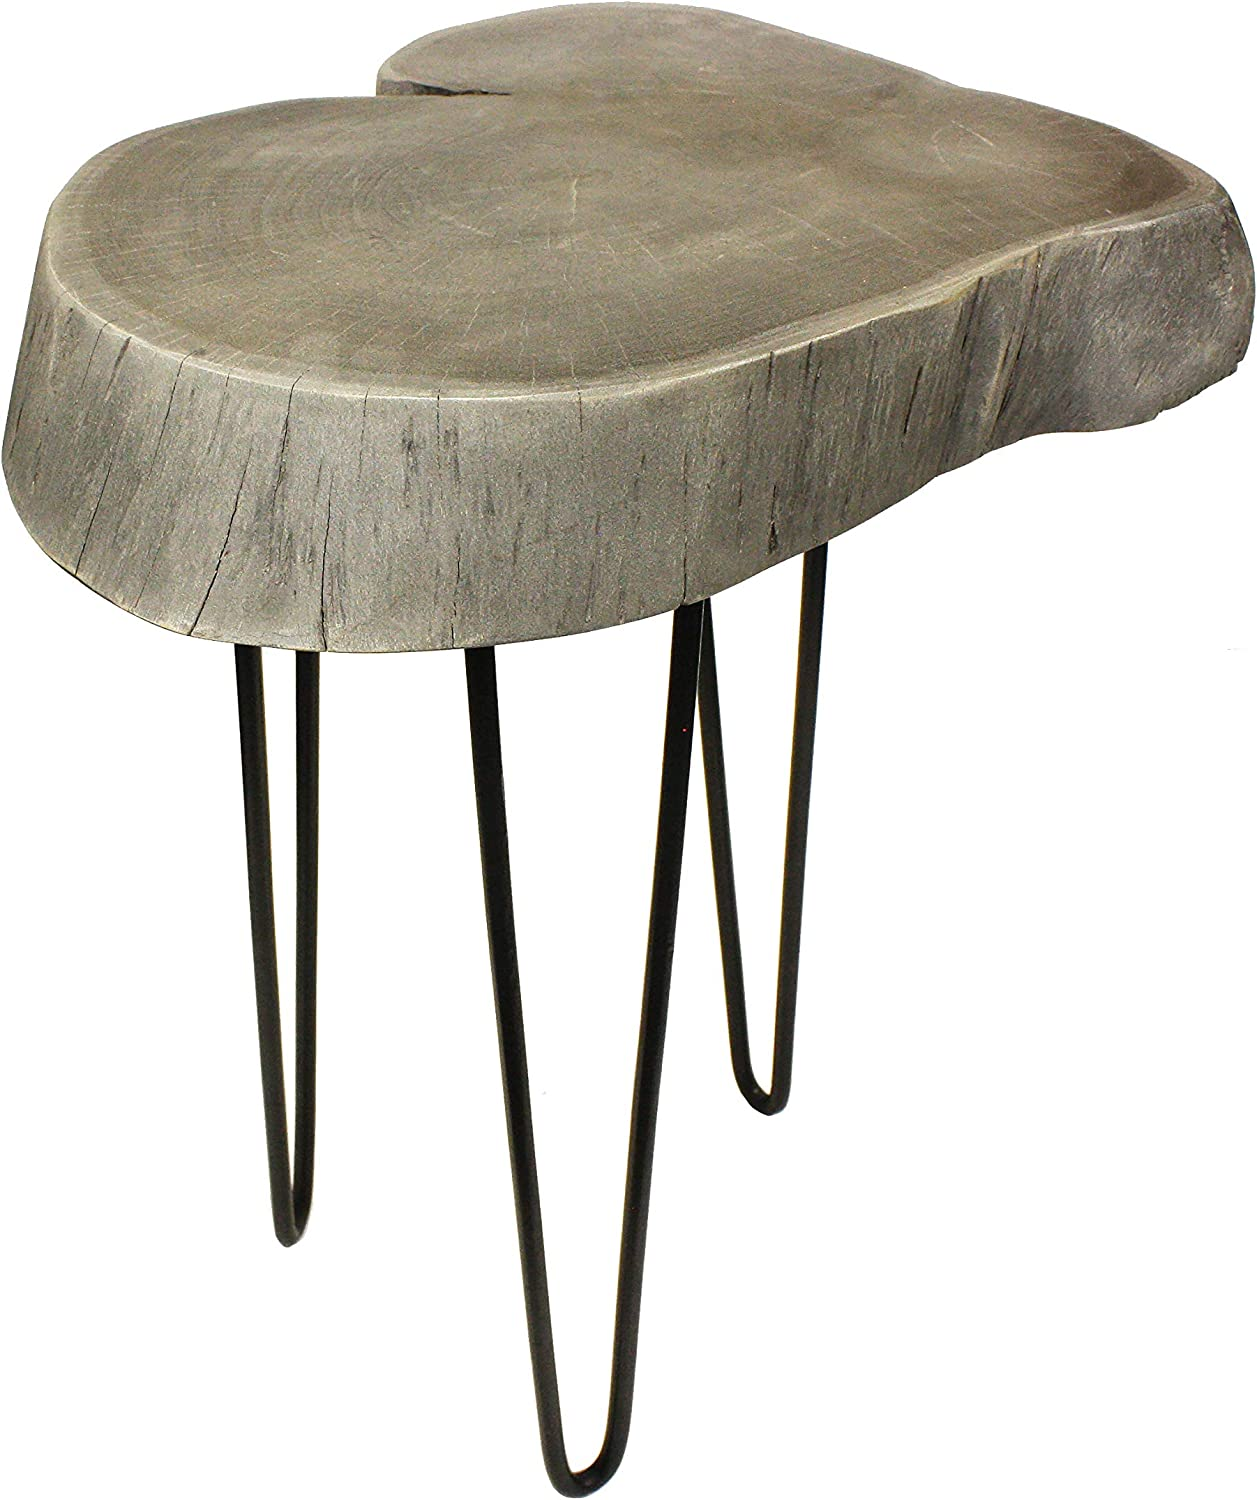 """Mountain Woods Live Edge Side Table/Stool Made with Hand Selected Organic Acacia Wood, Modern Grey Finished, 17""""X17""""X20"""""""